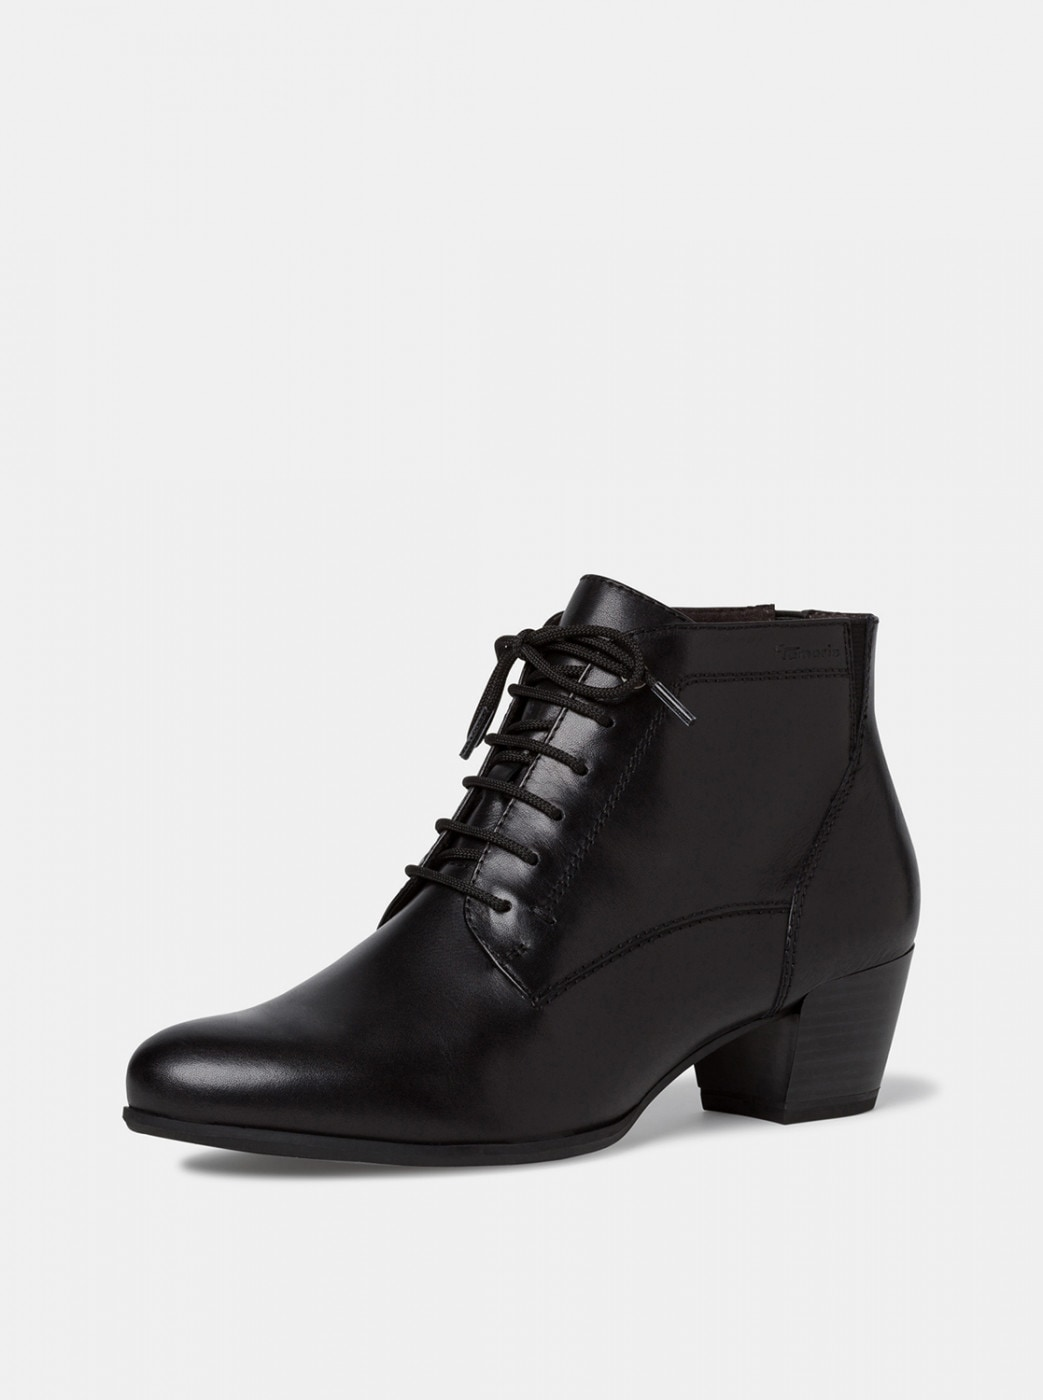 Tamaris Black Leather Ankle Boots